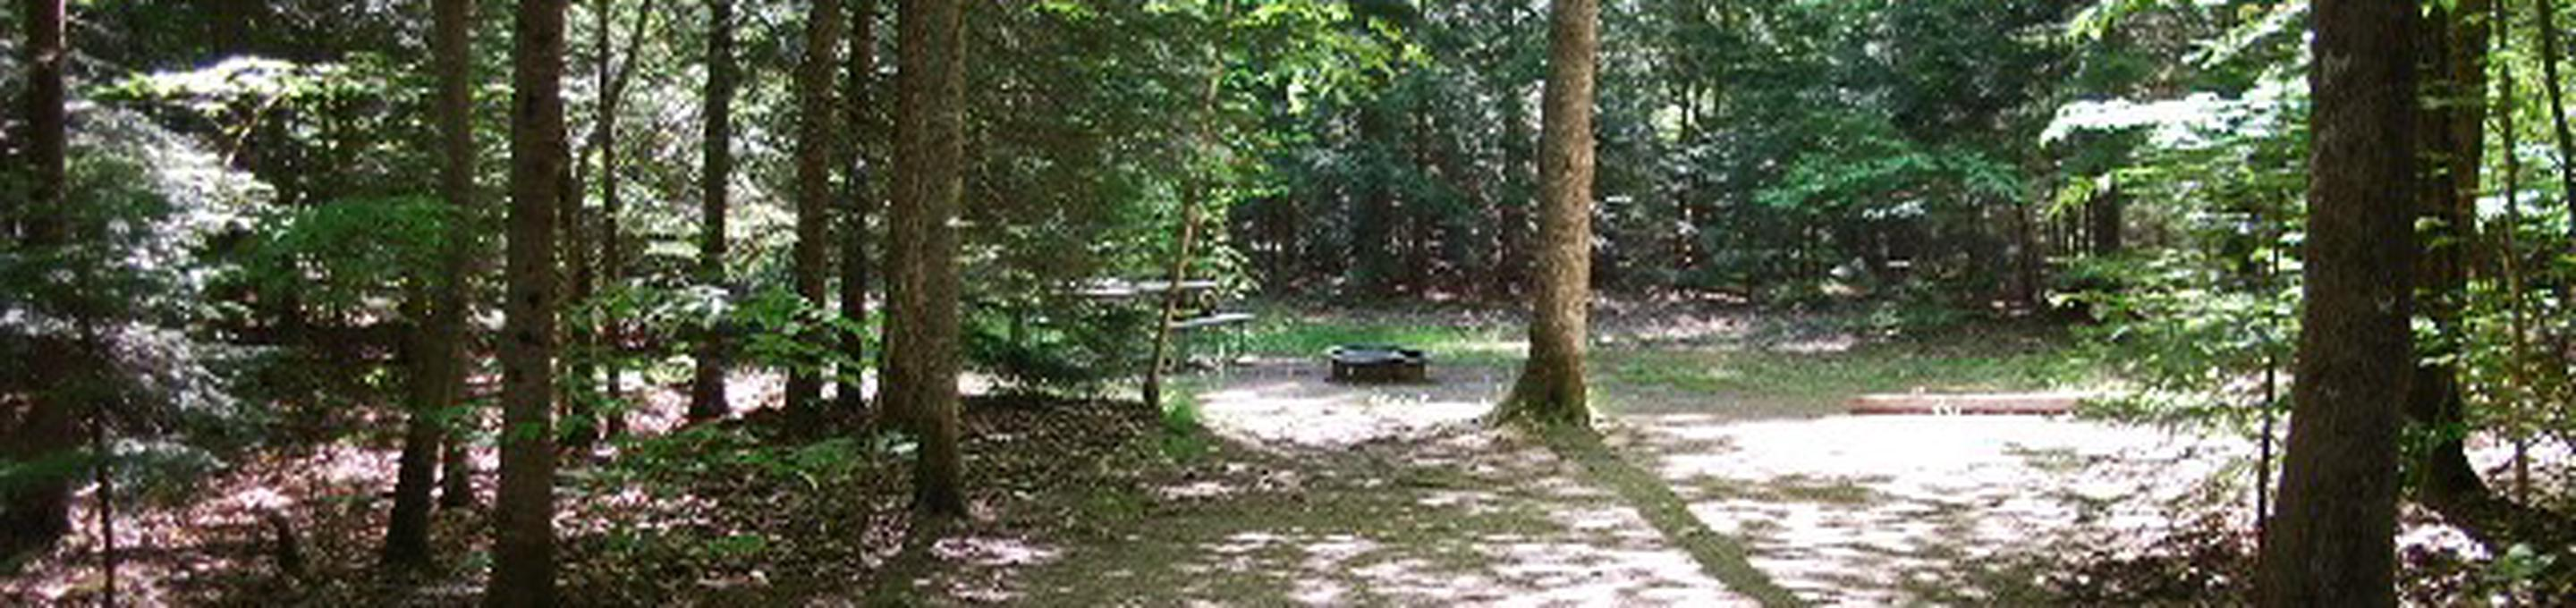 Widewaters Campground site #21